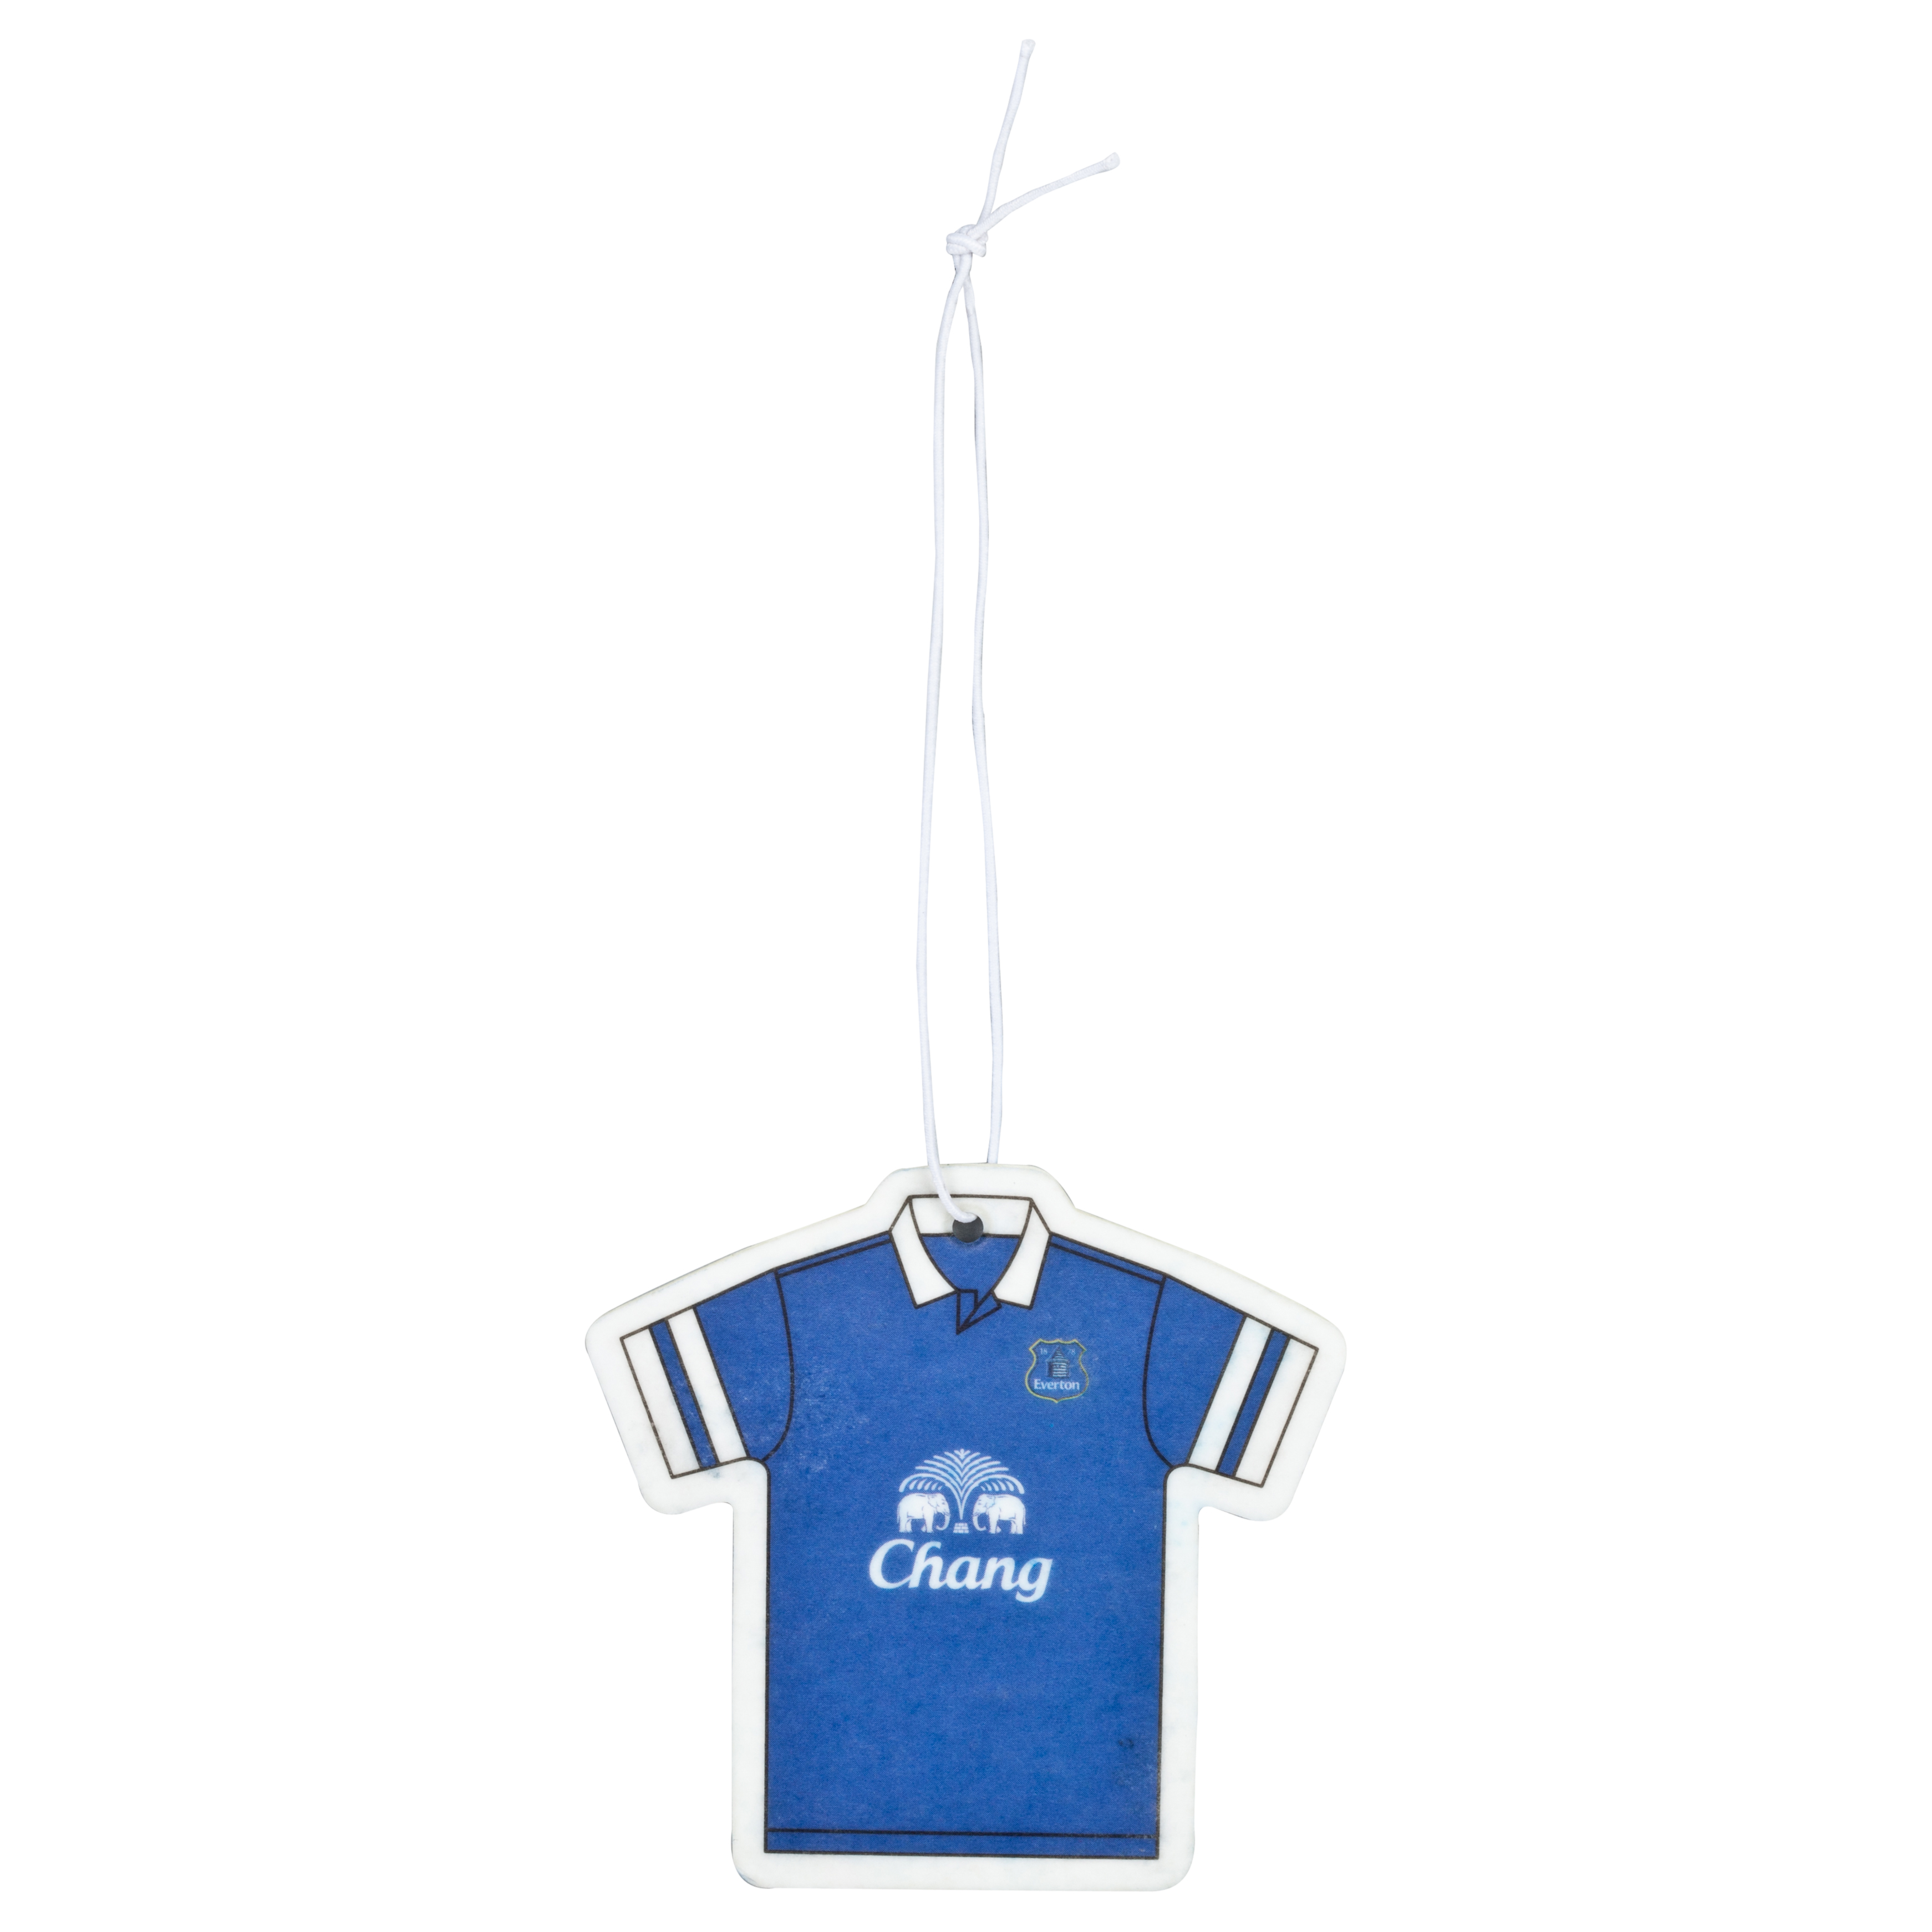 Everton Home Kit Air Freshener 13/14